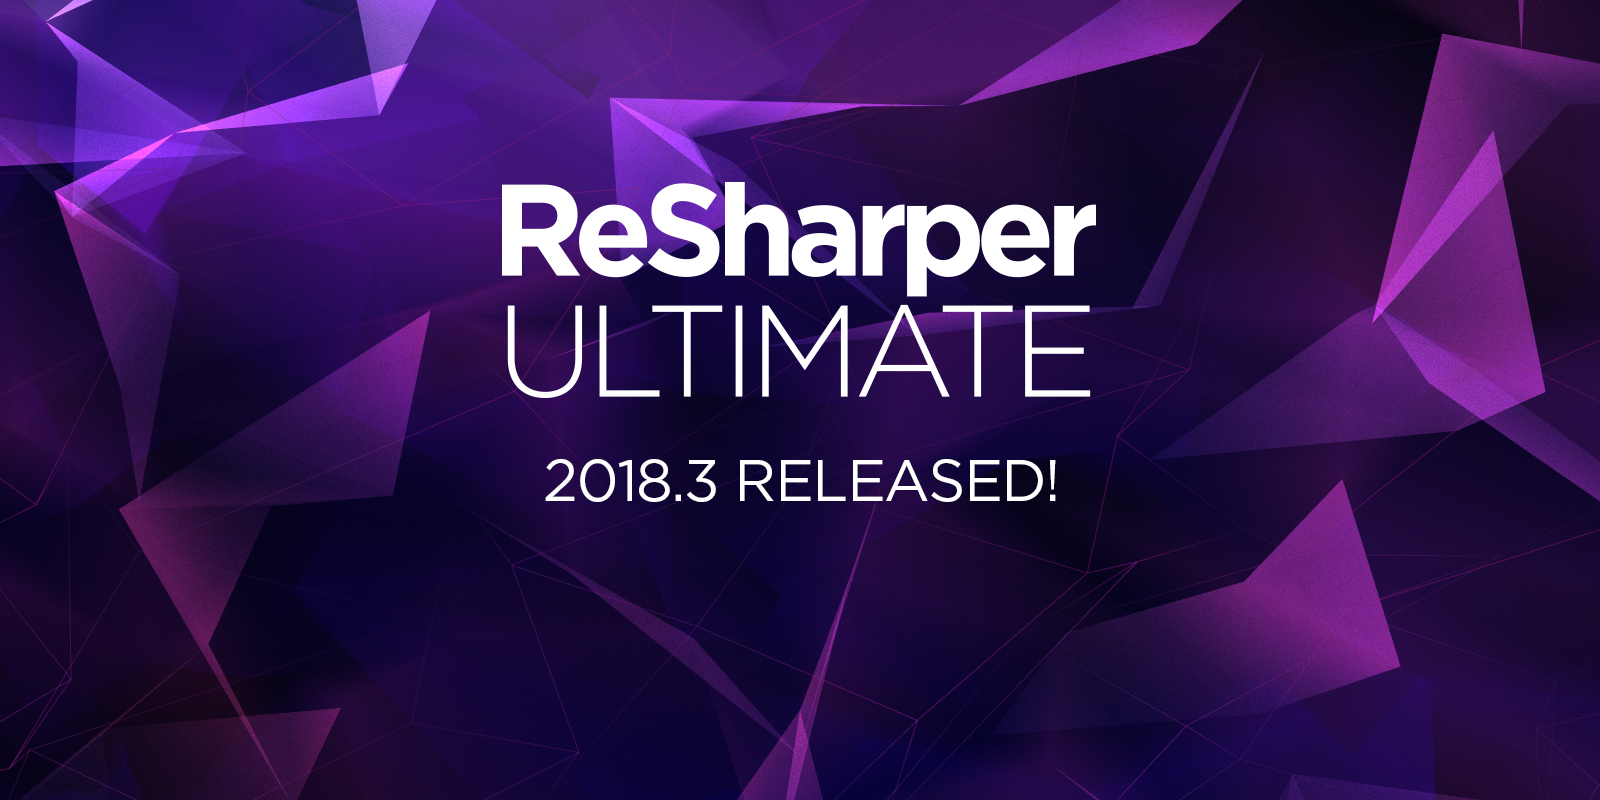 ReSharper Ultimate 2018.3